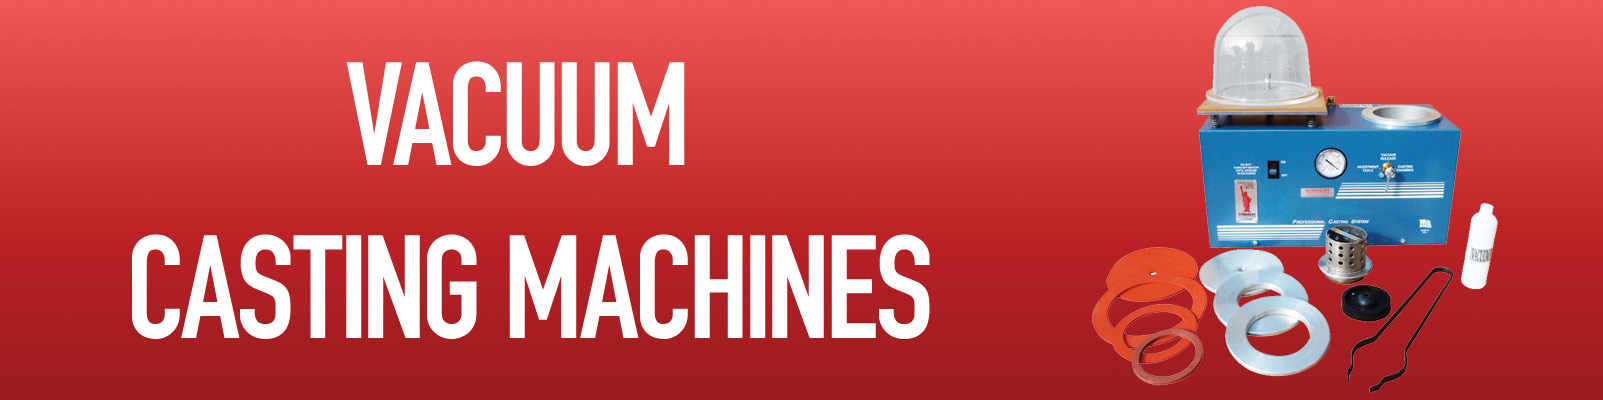 Vacuum Casting Machines